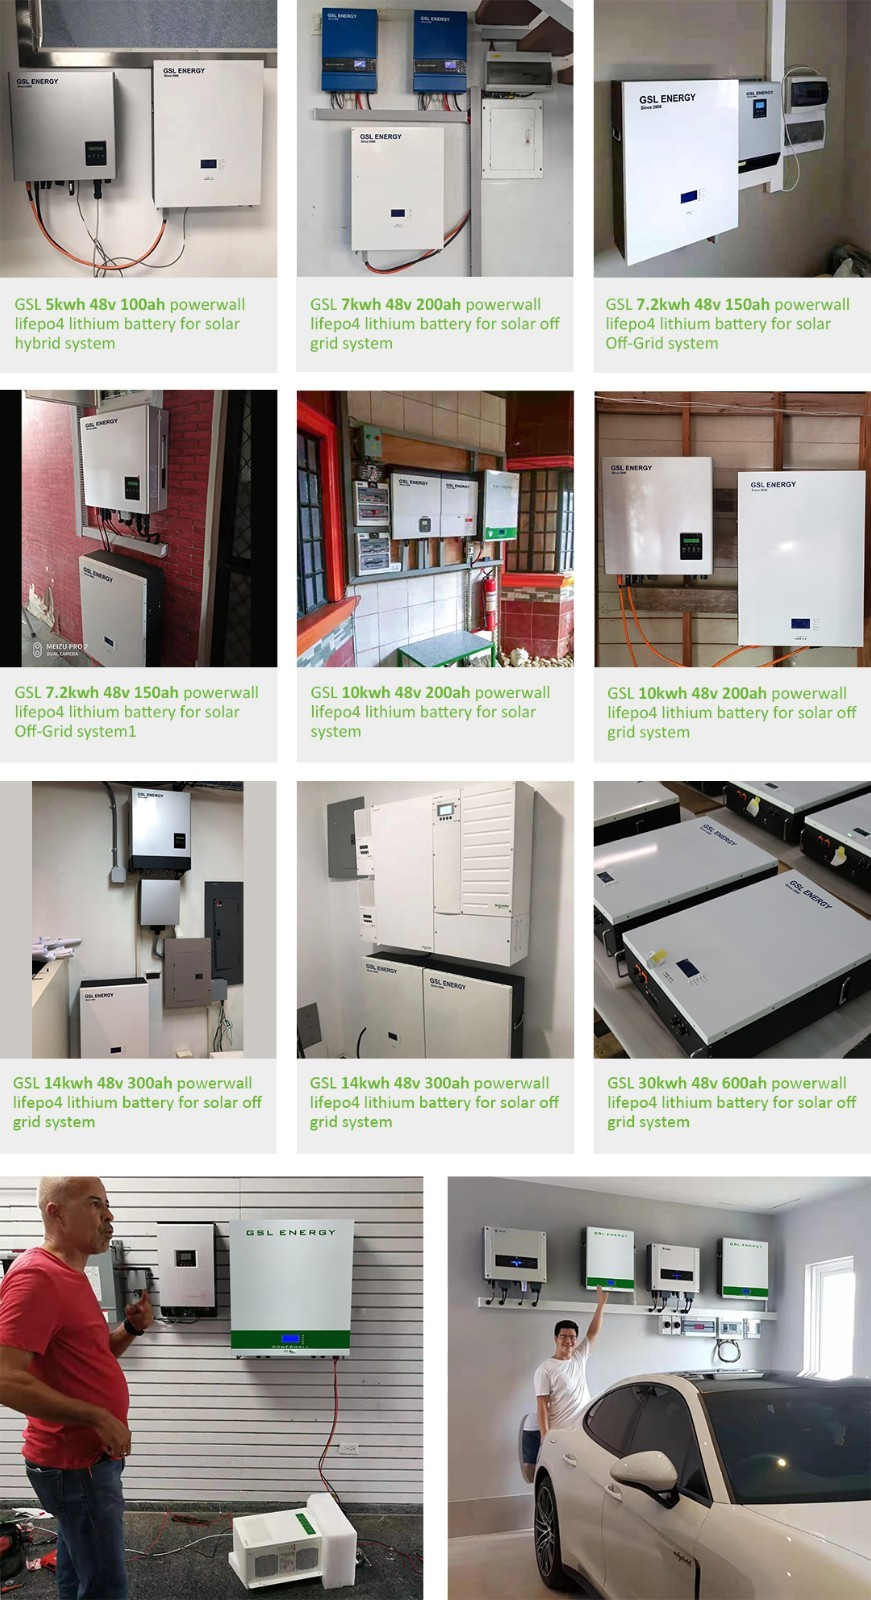 GSL ENERGY Custom powerwall 10kwh for business